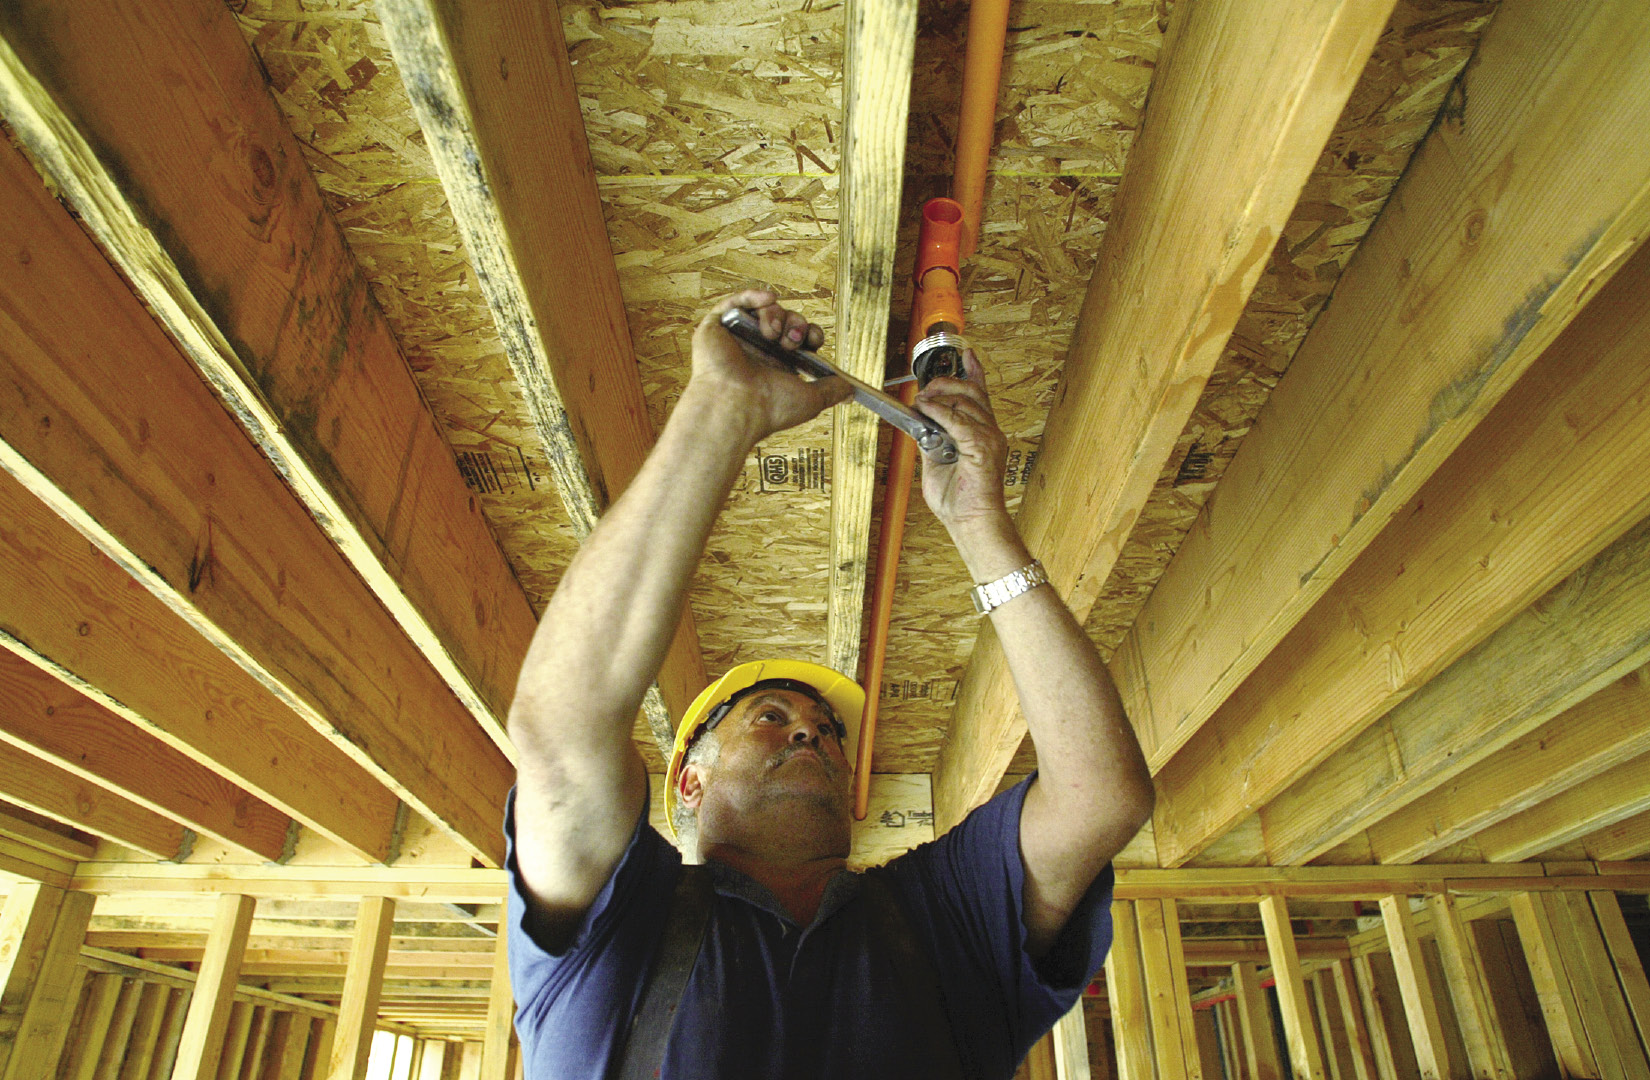 Sprinkler installer fitting a sprinkler head in a newly constructed home.